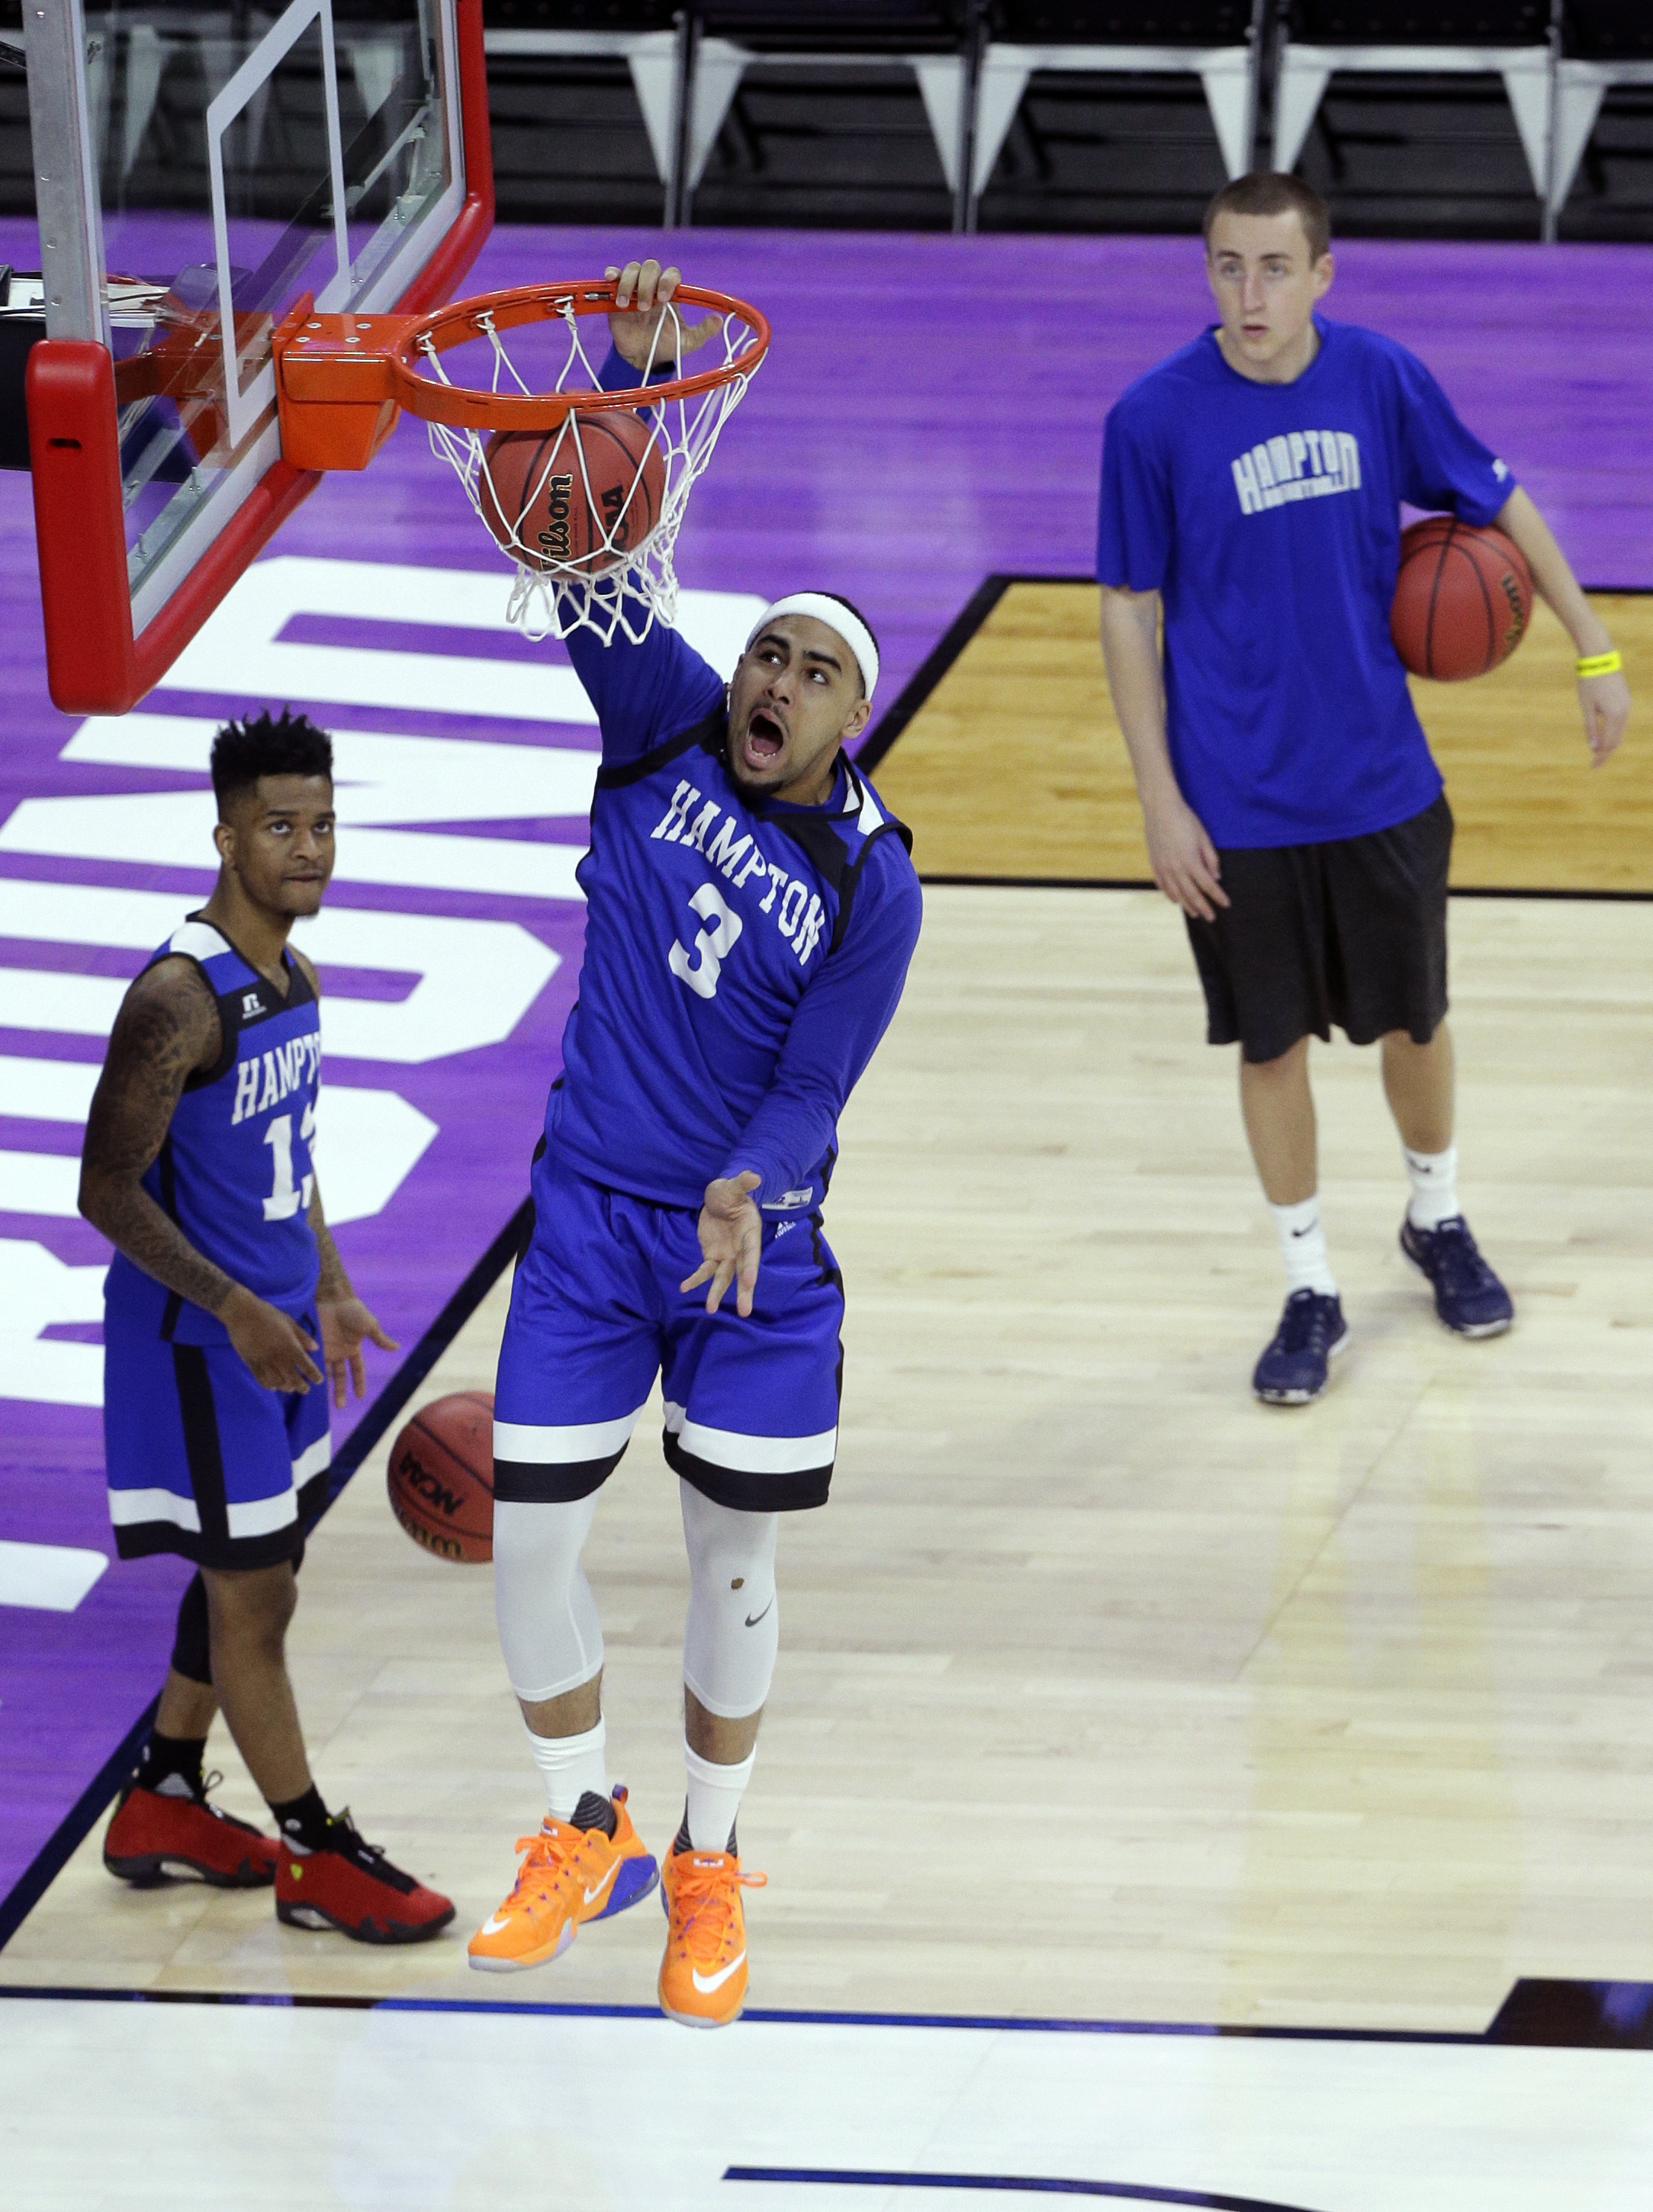 Hampton's Quinton Chievous dunks during practice for a first-round men's college basketball game in the NCAA Tournament in Raleigh, N.C., Wednesday, March 16, 2016. Hampton plays Virginia on Thursday. (AP Photo/Chuck Burton)